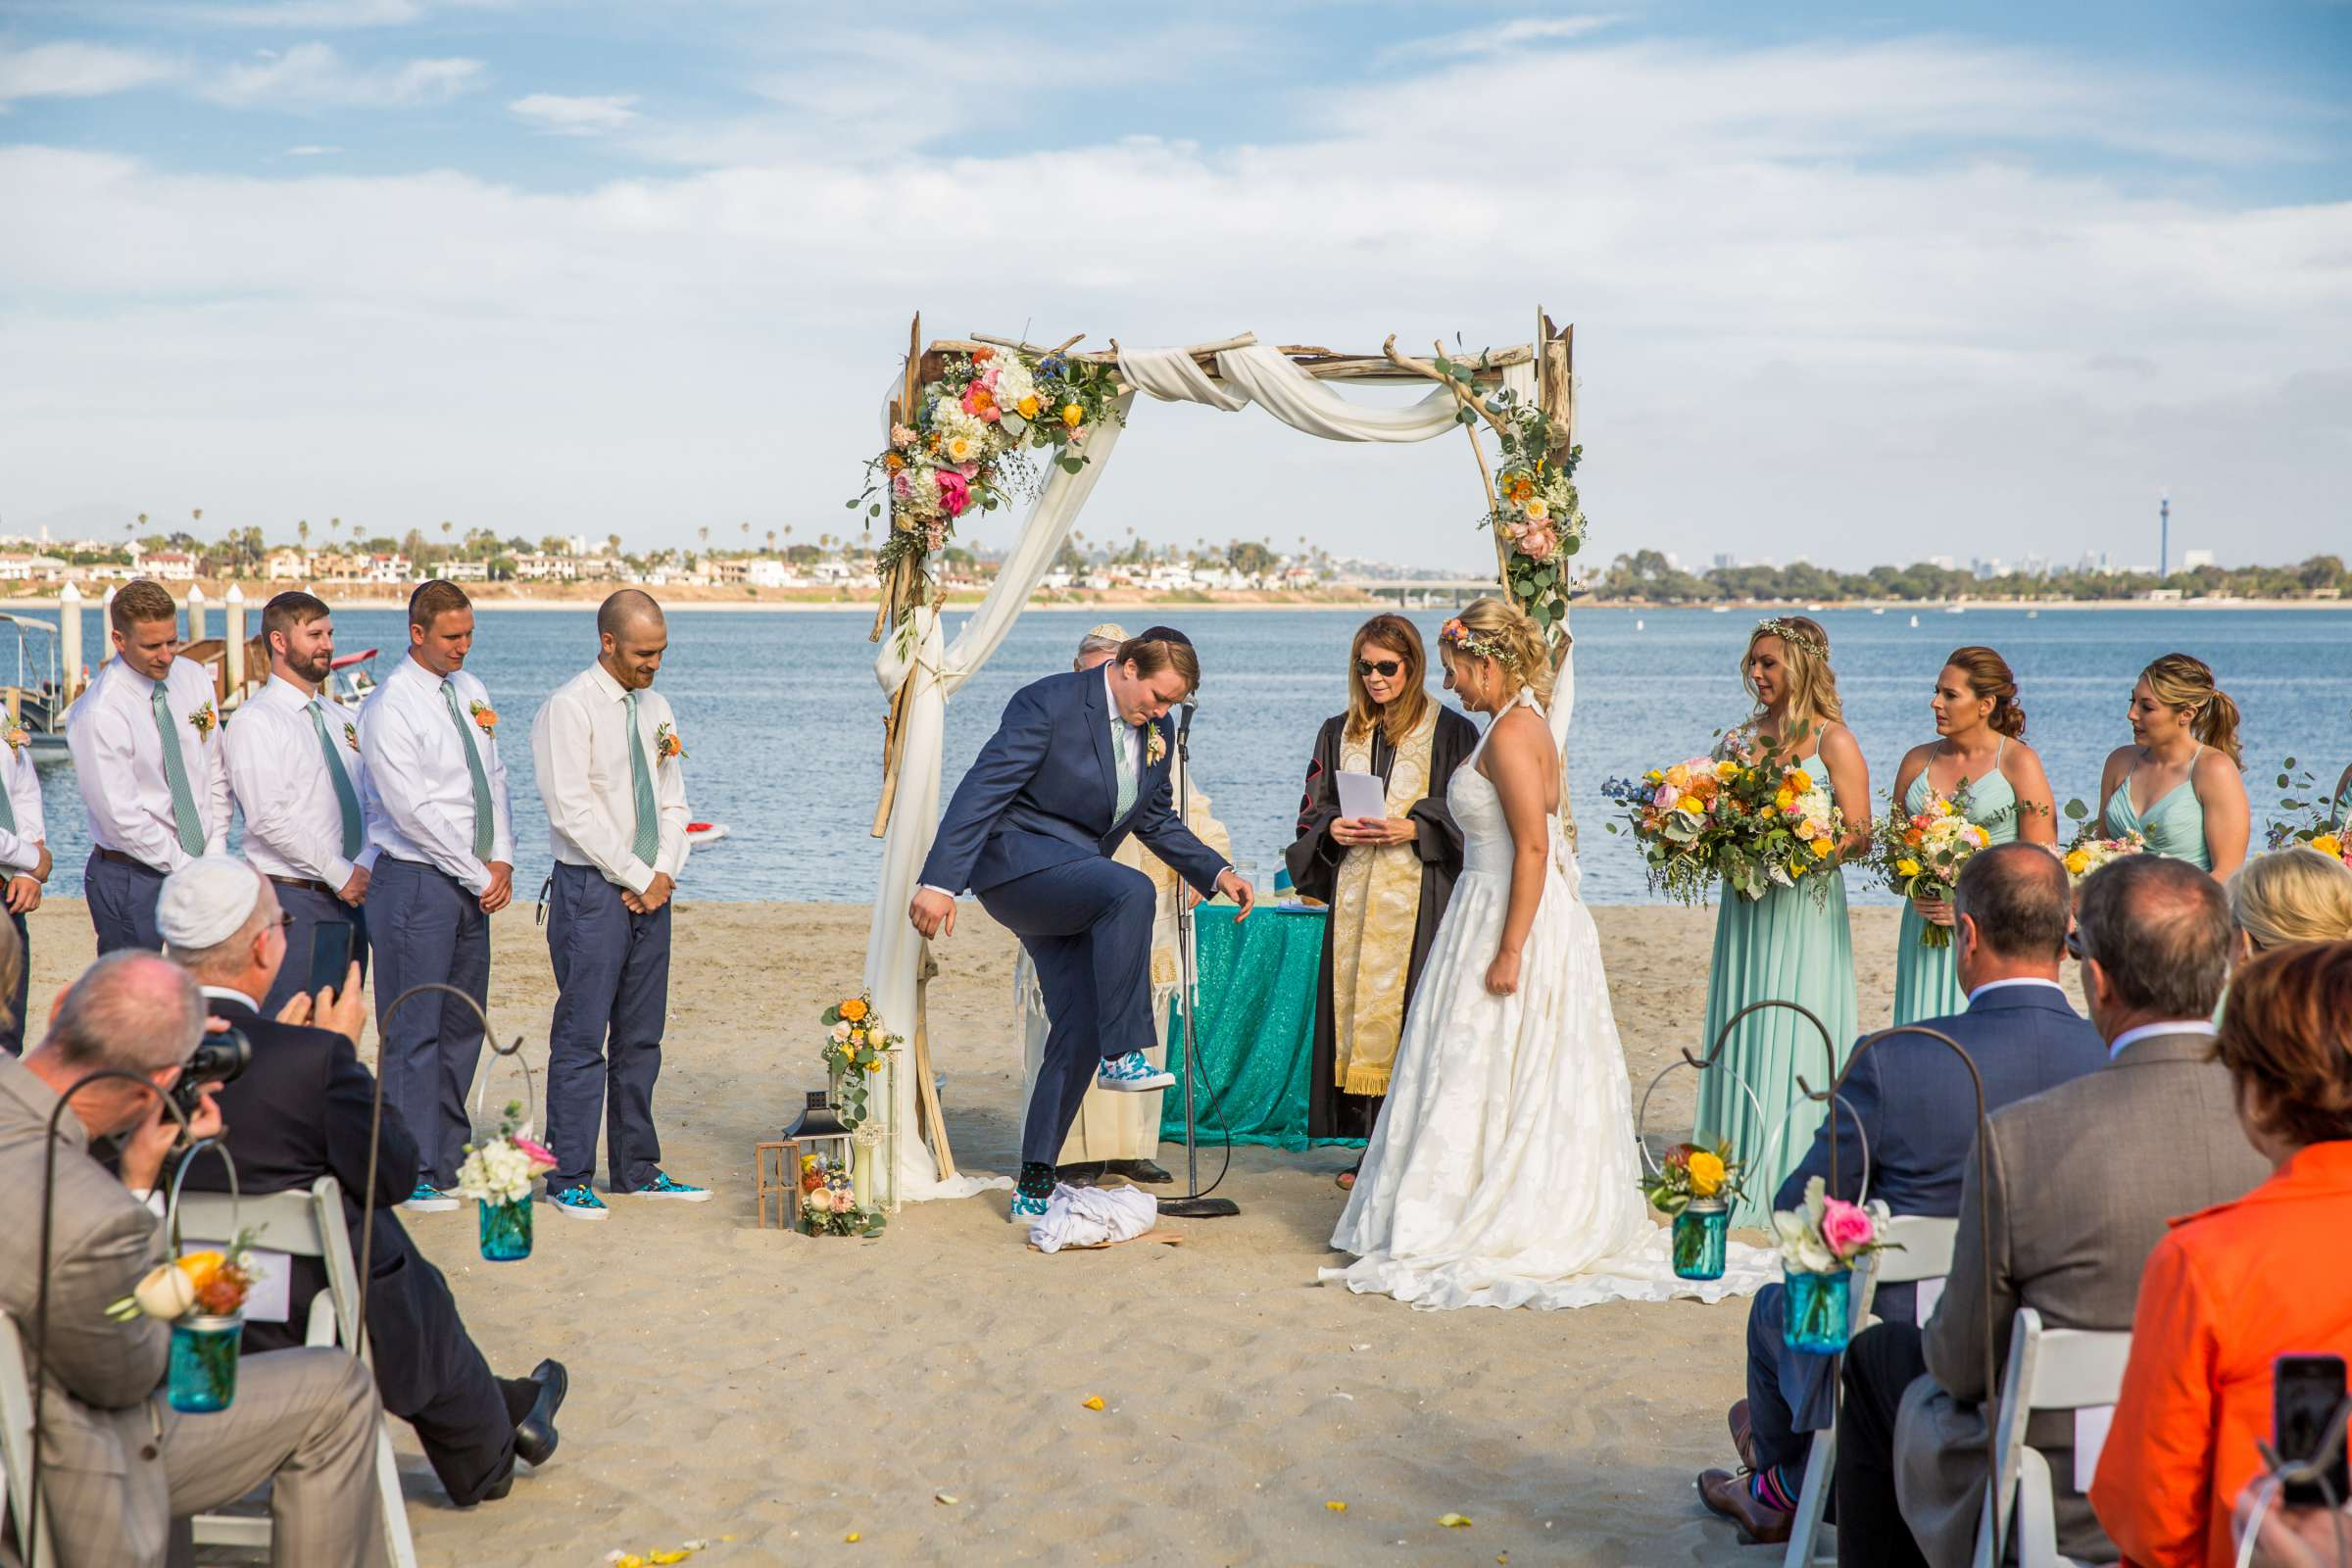 Catamaran Resort Wedding coordinated by Lavish Weddings, Brittany and David Wedding Photo #77 by True Photography